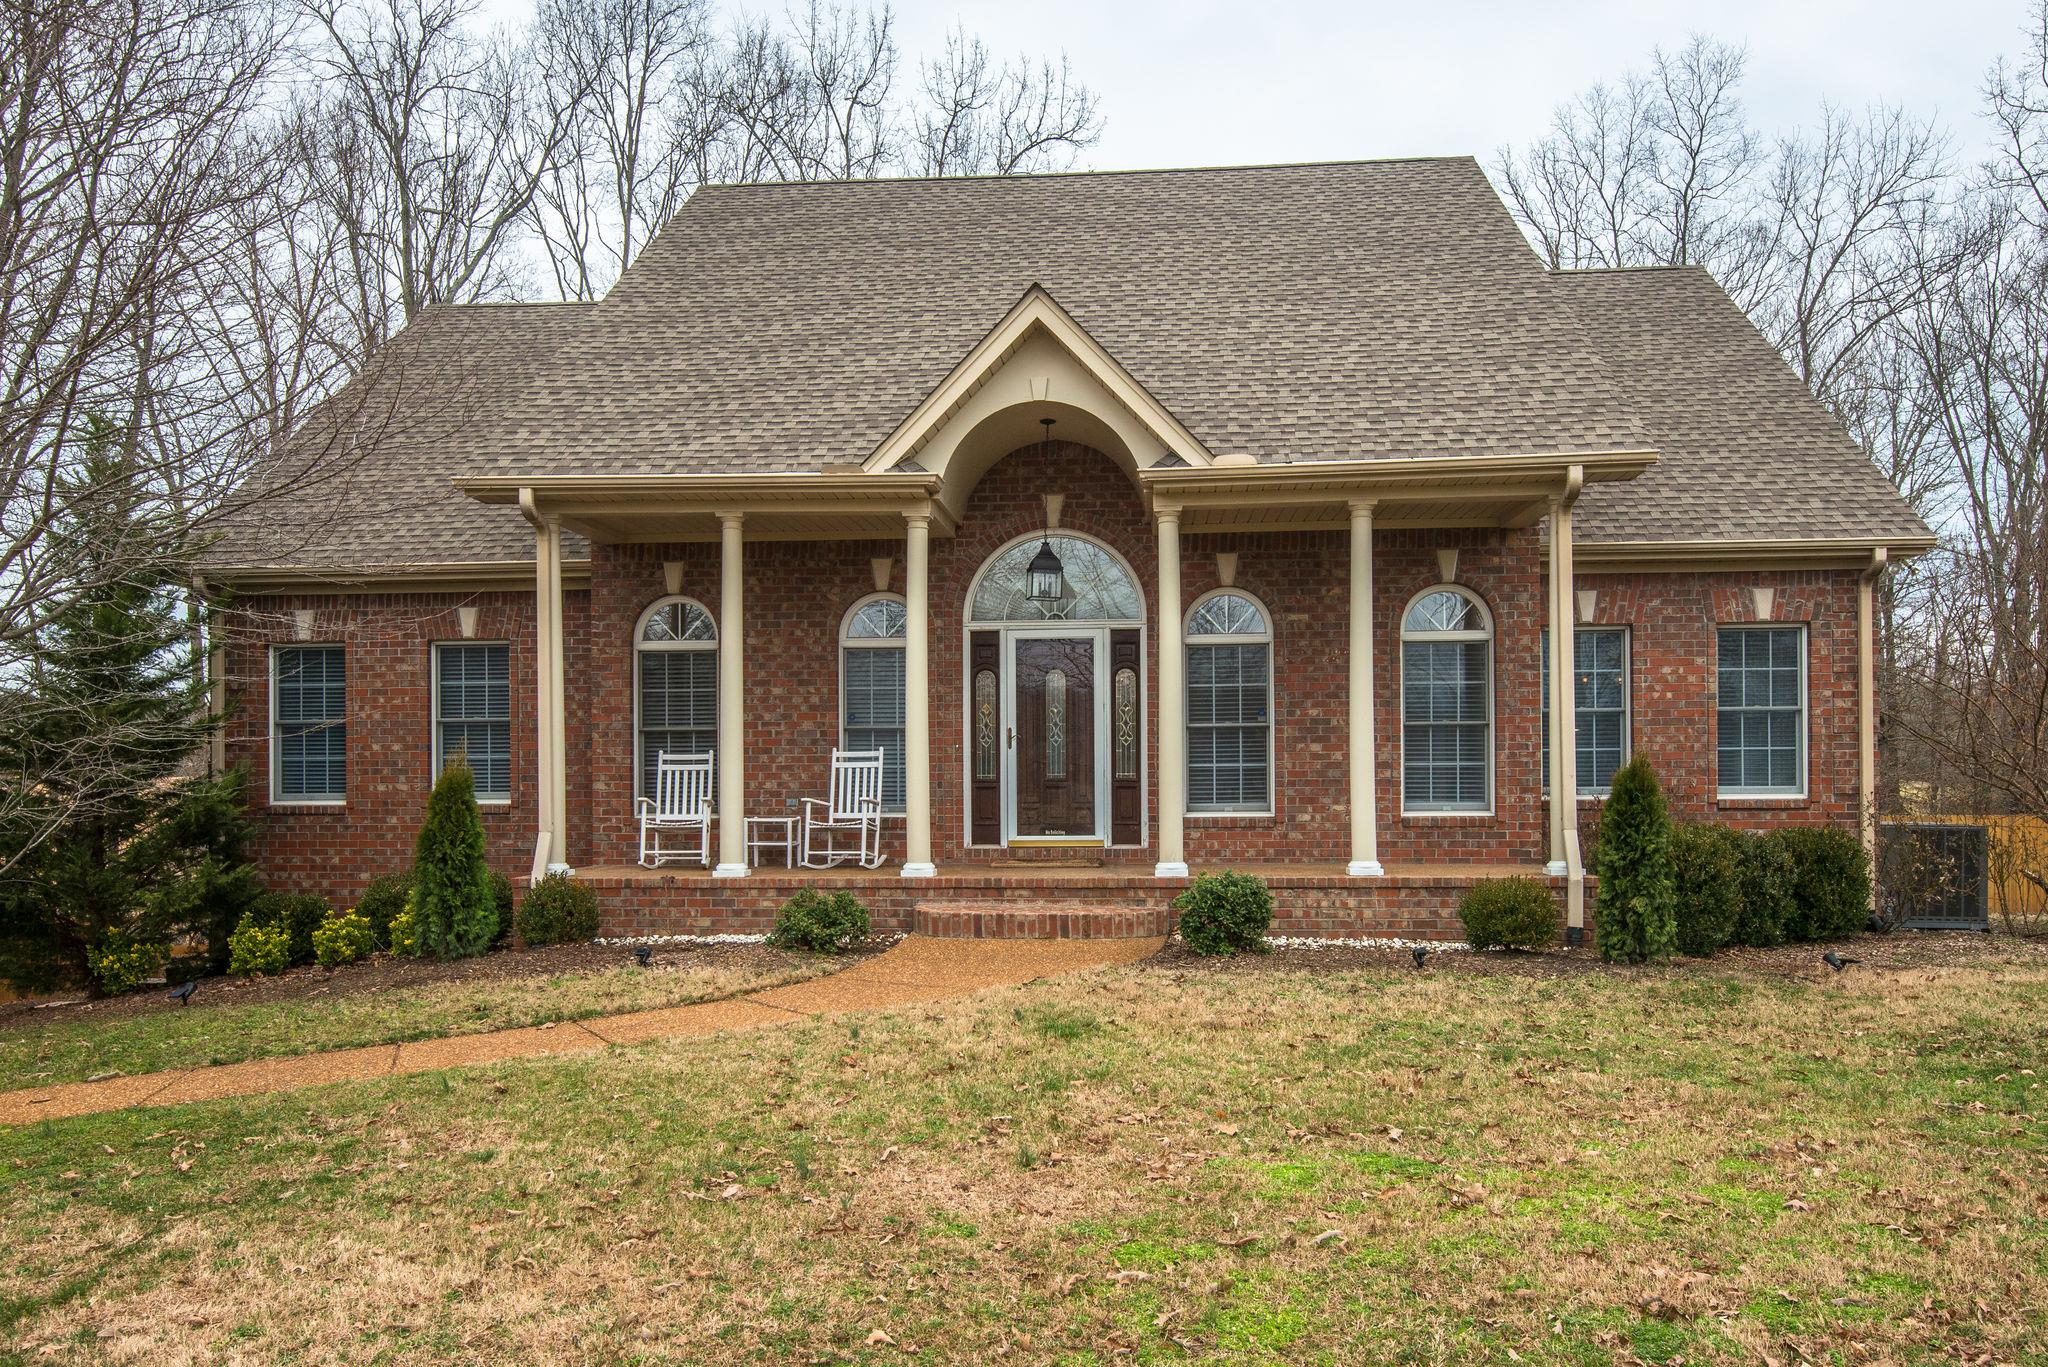 7602 Knottingham Way, Fairview, Tennessee